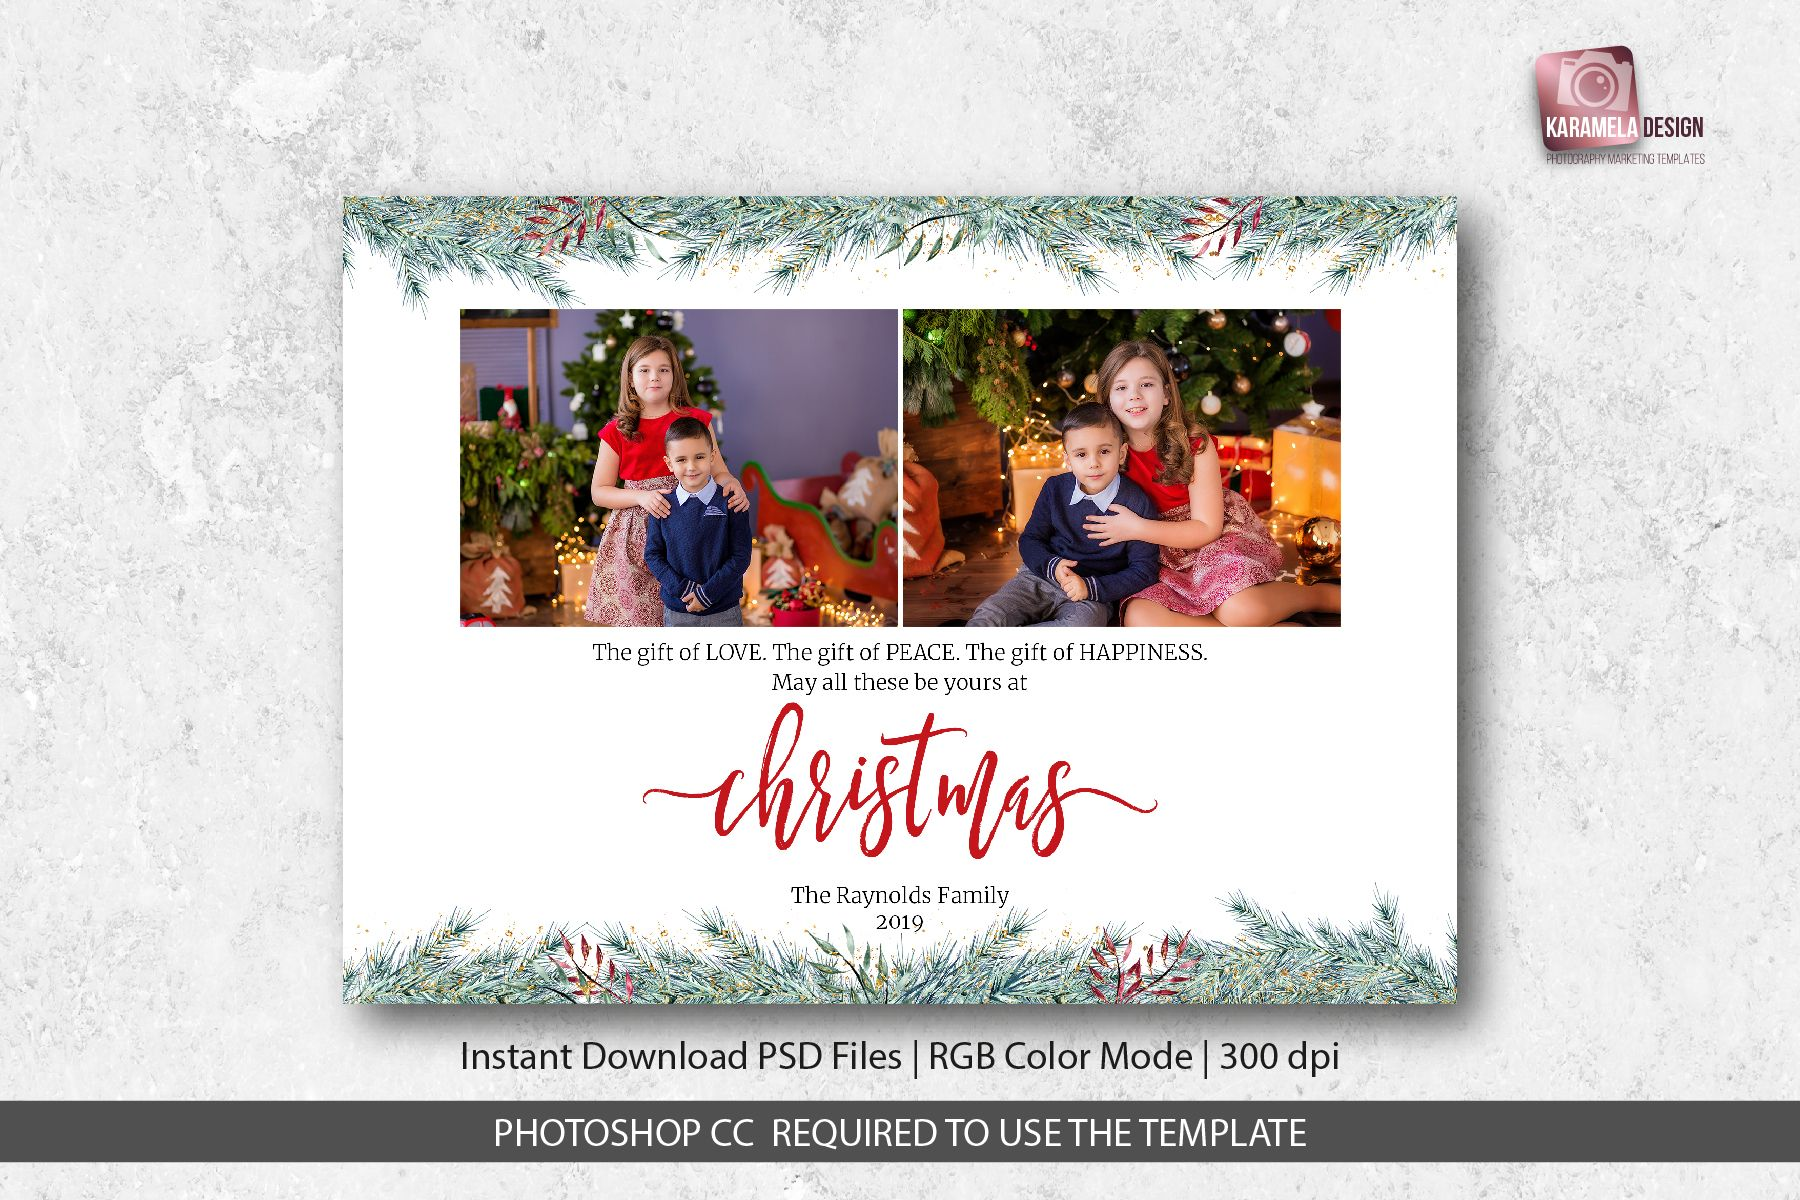 Christmas Card Template For Photographers Intended For Christmas Photo Ca In 2020 Photoshop Christmas Card Template Christmas Photo Card Template Holiday Card Template